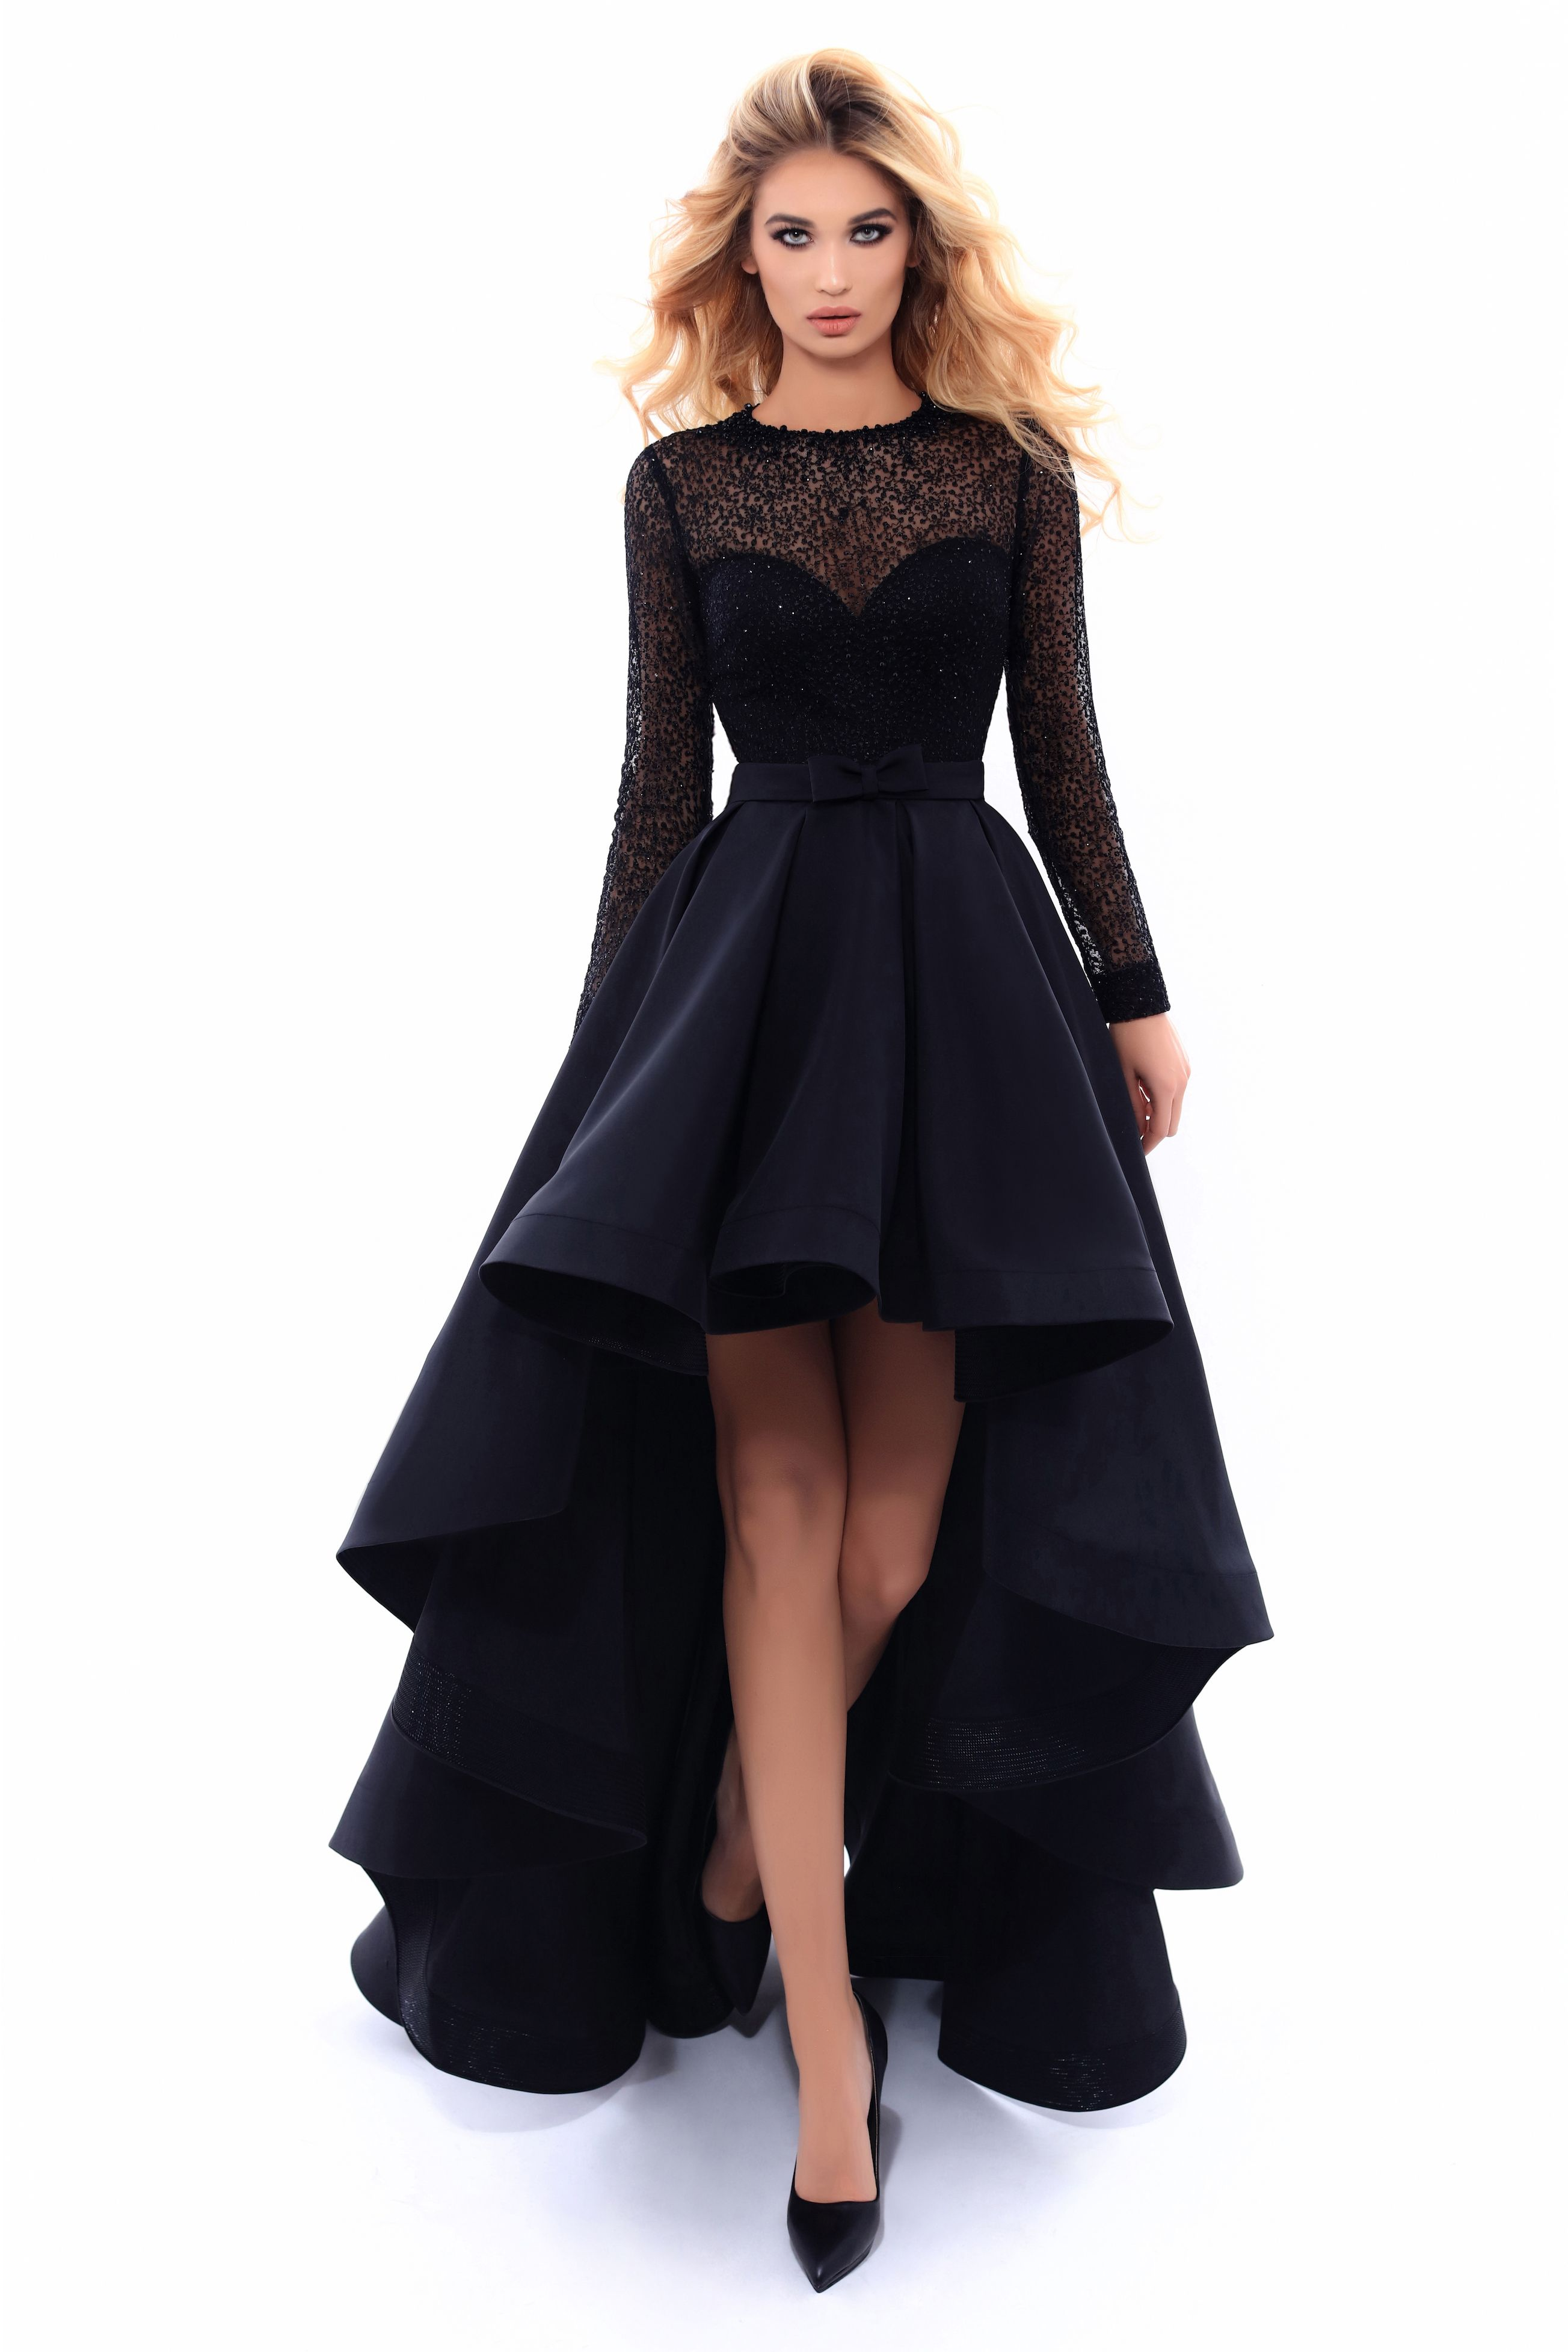 Tarik Ediz Miracle Collection 2017 Fall Winter Style 93309 High Low Black Evening Gown With Long Sleeves Also Ava Dresses Tarik Ediz Dresses Evening Dresses [ 3910 x 2607 Pixel ]